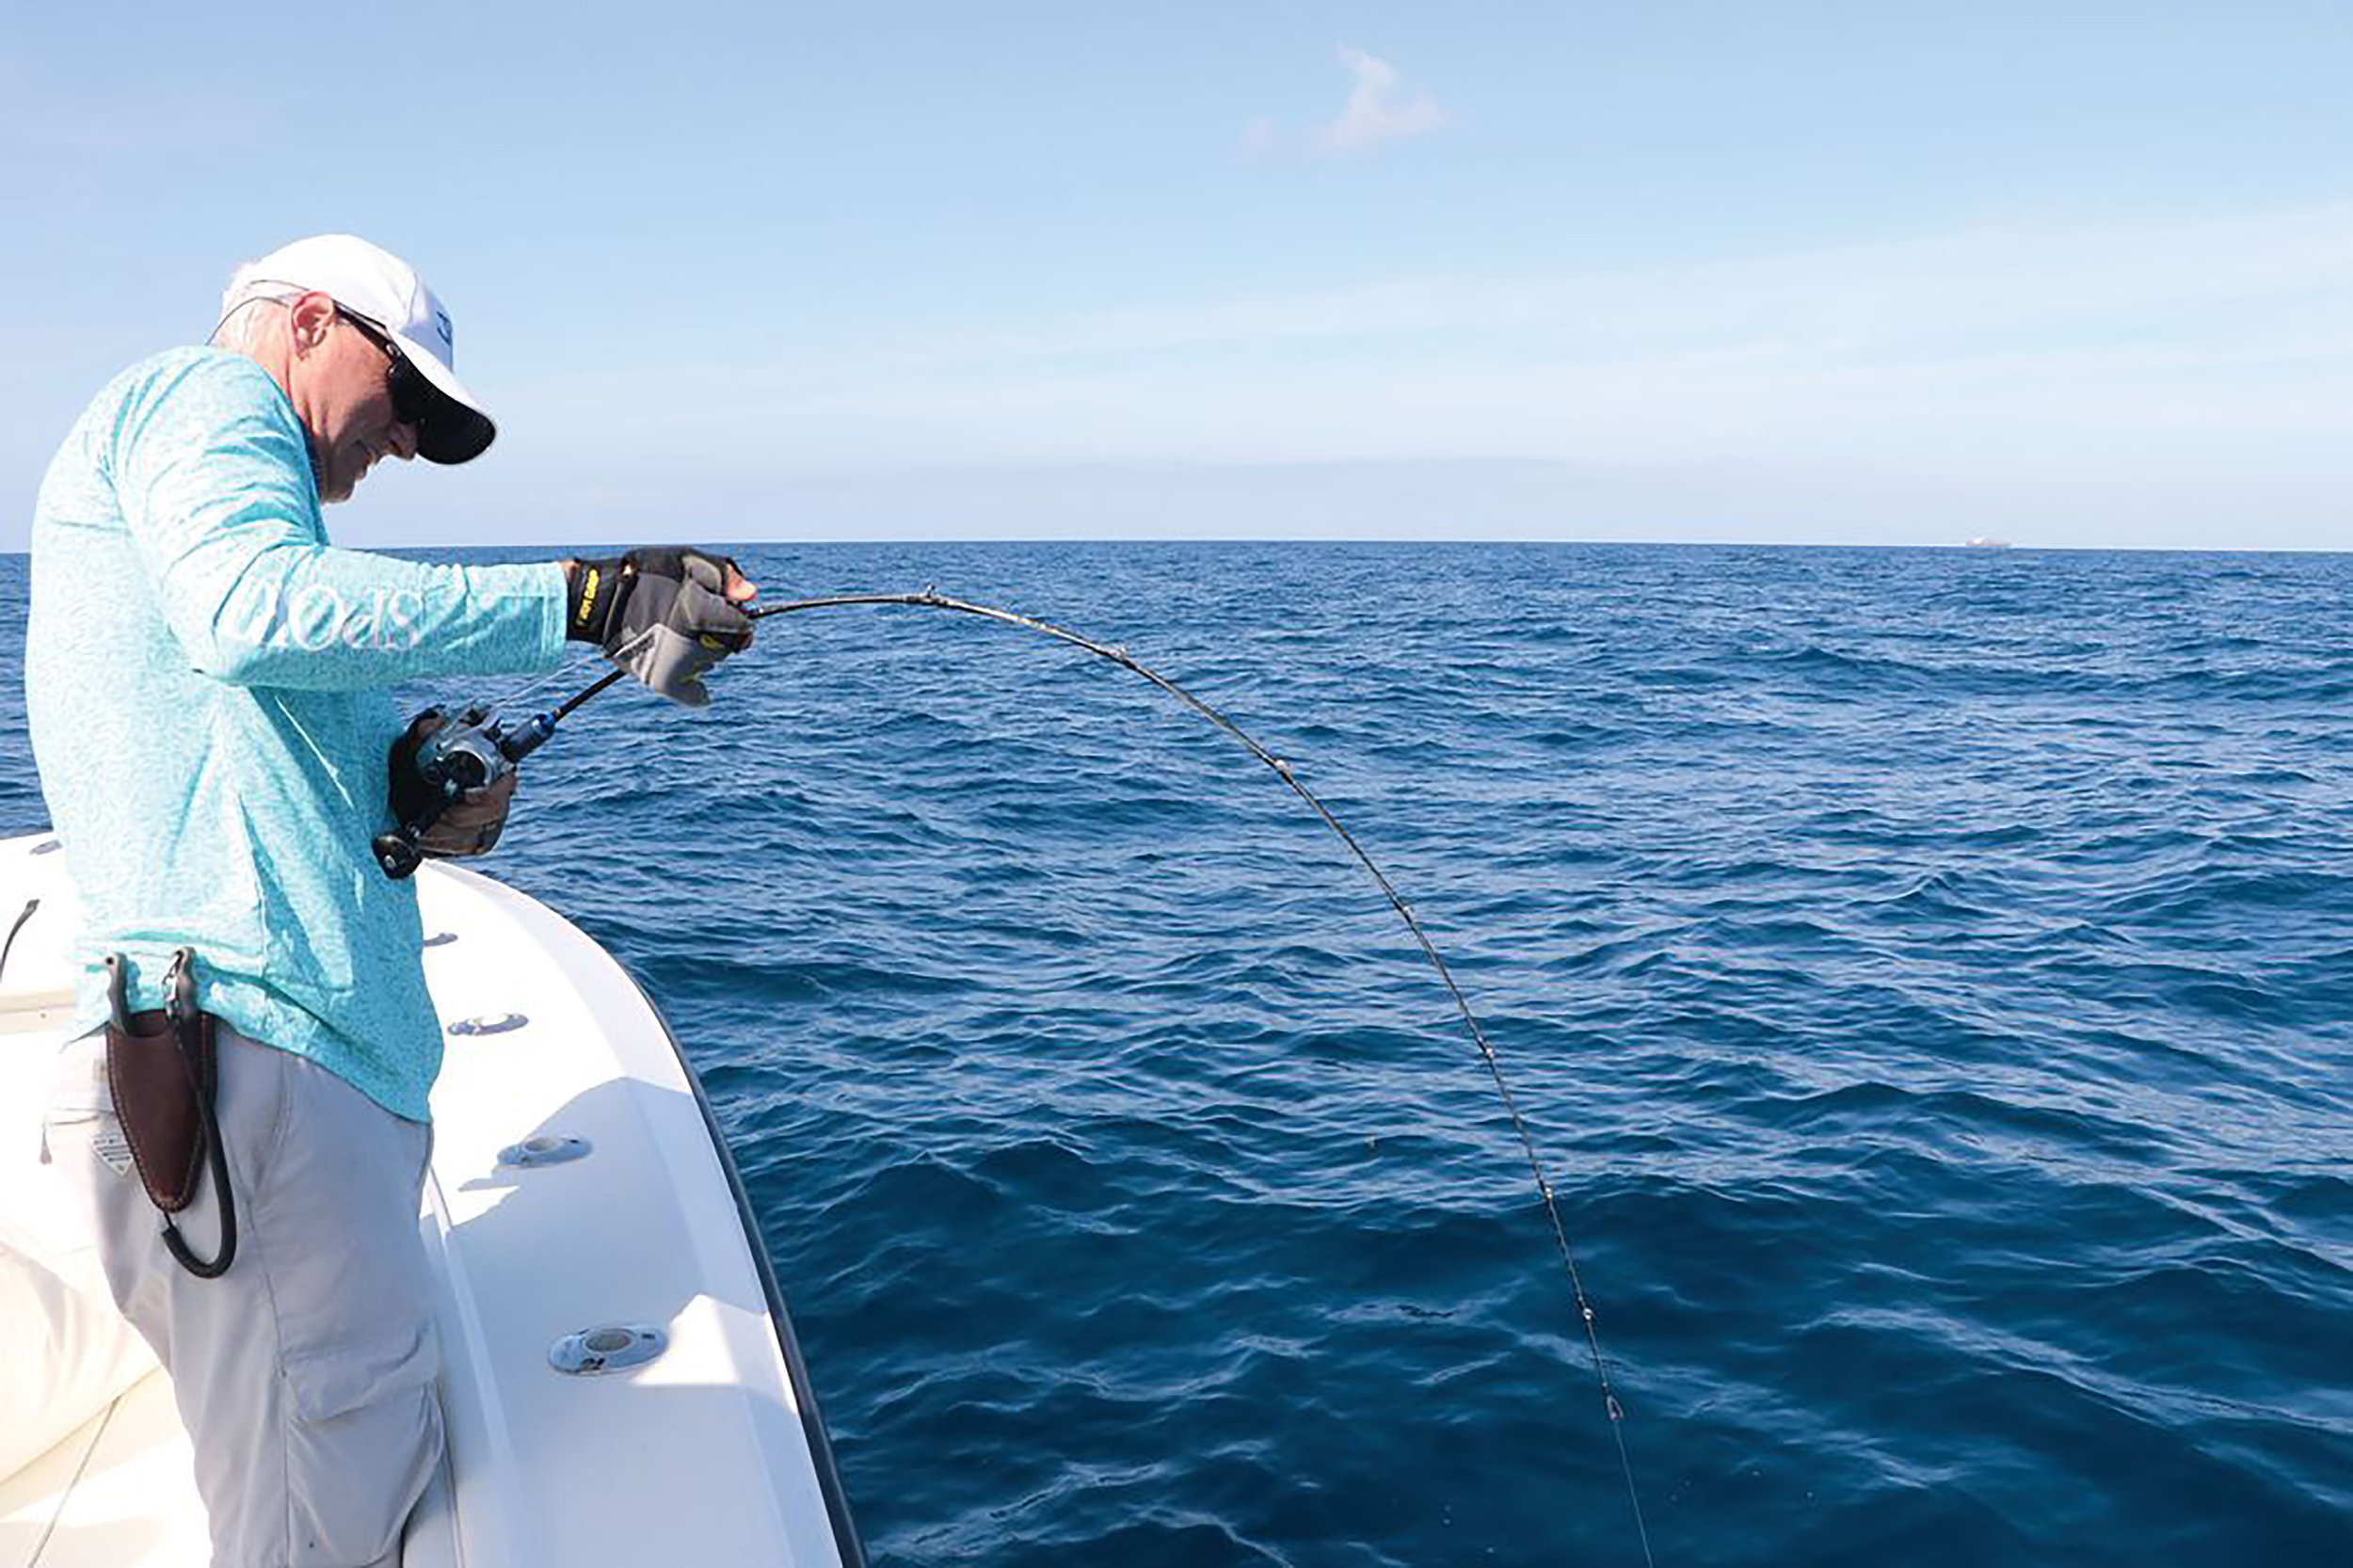 The current crop of slow-pitch jigging rods have a very slow, even taper and bend from the tip to the reel, but can sustain an amazing amount of pressure, as seen in this angler-versus-amberjack battle. Better, though, to keep the leading hand on the short foregrip rather than the rod itself, though it's easy to do the latter.  Doug Olander / Sport Fishing